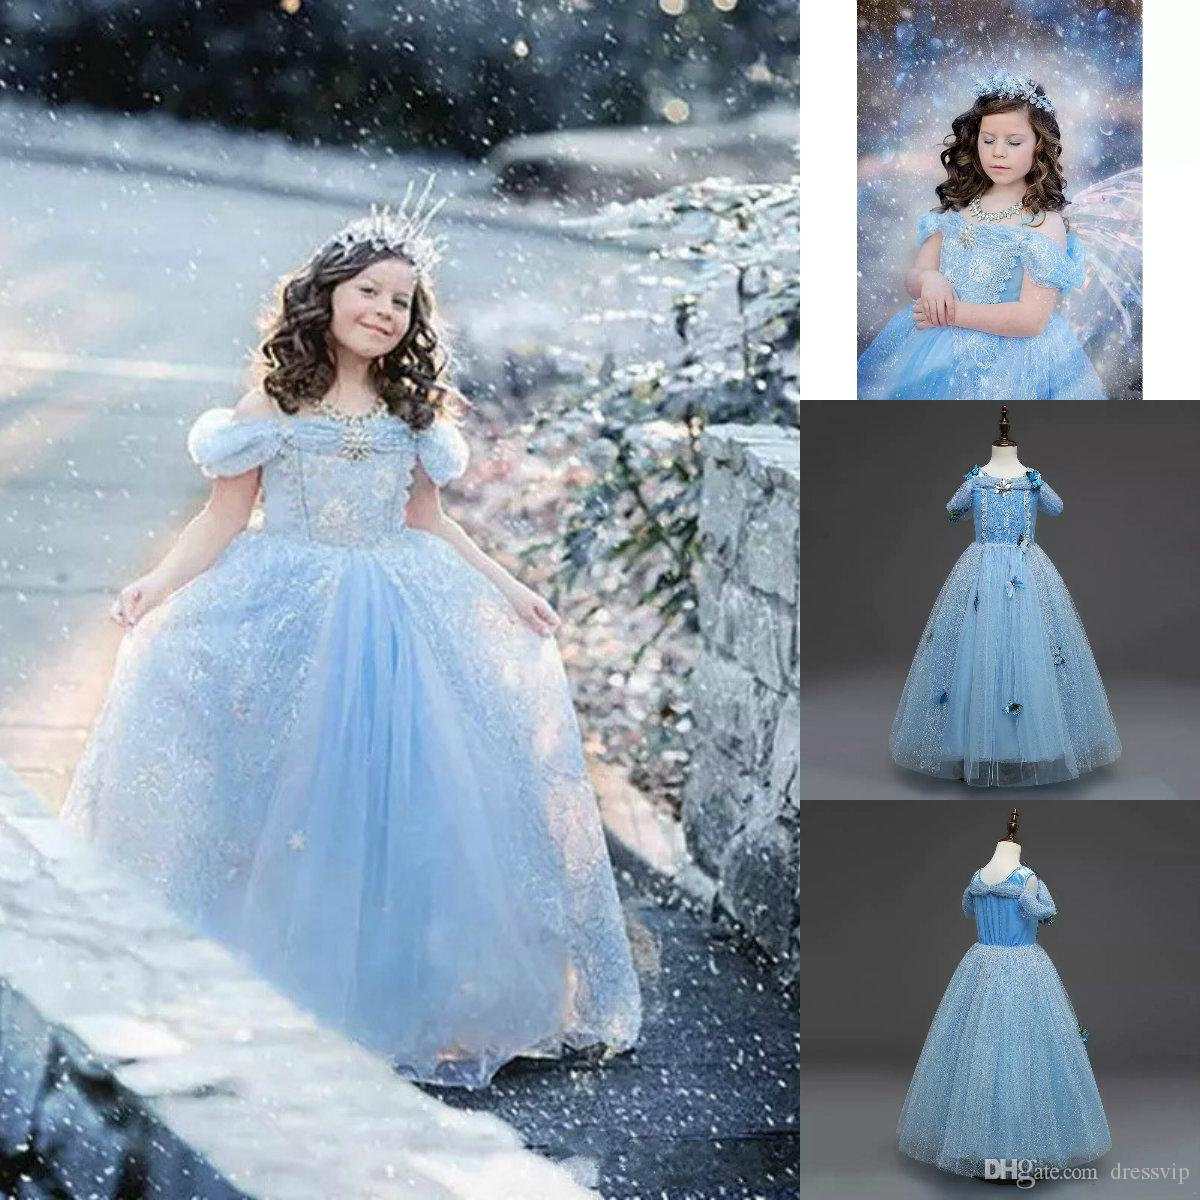 Charming halloween bridesmaid dresses pictures inspiration wedding gallery of halloween bridesmaid dresses 2018 the snow queen halloween costume cartoon princess christmas ombrellifo Image collections